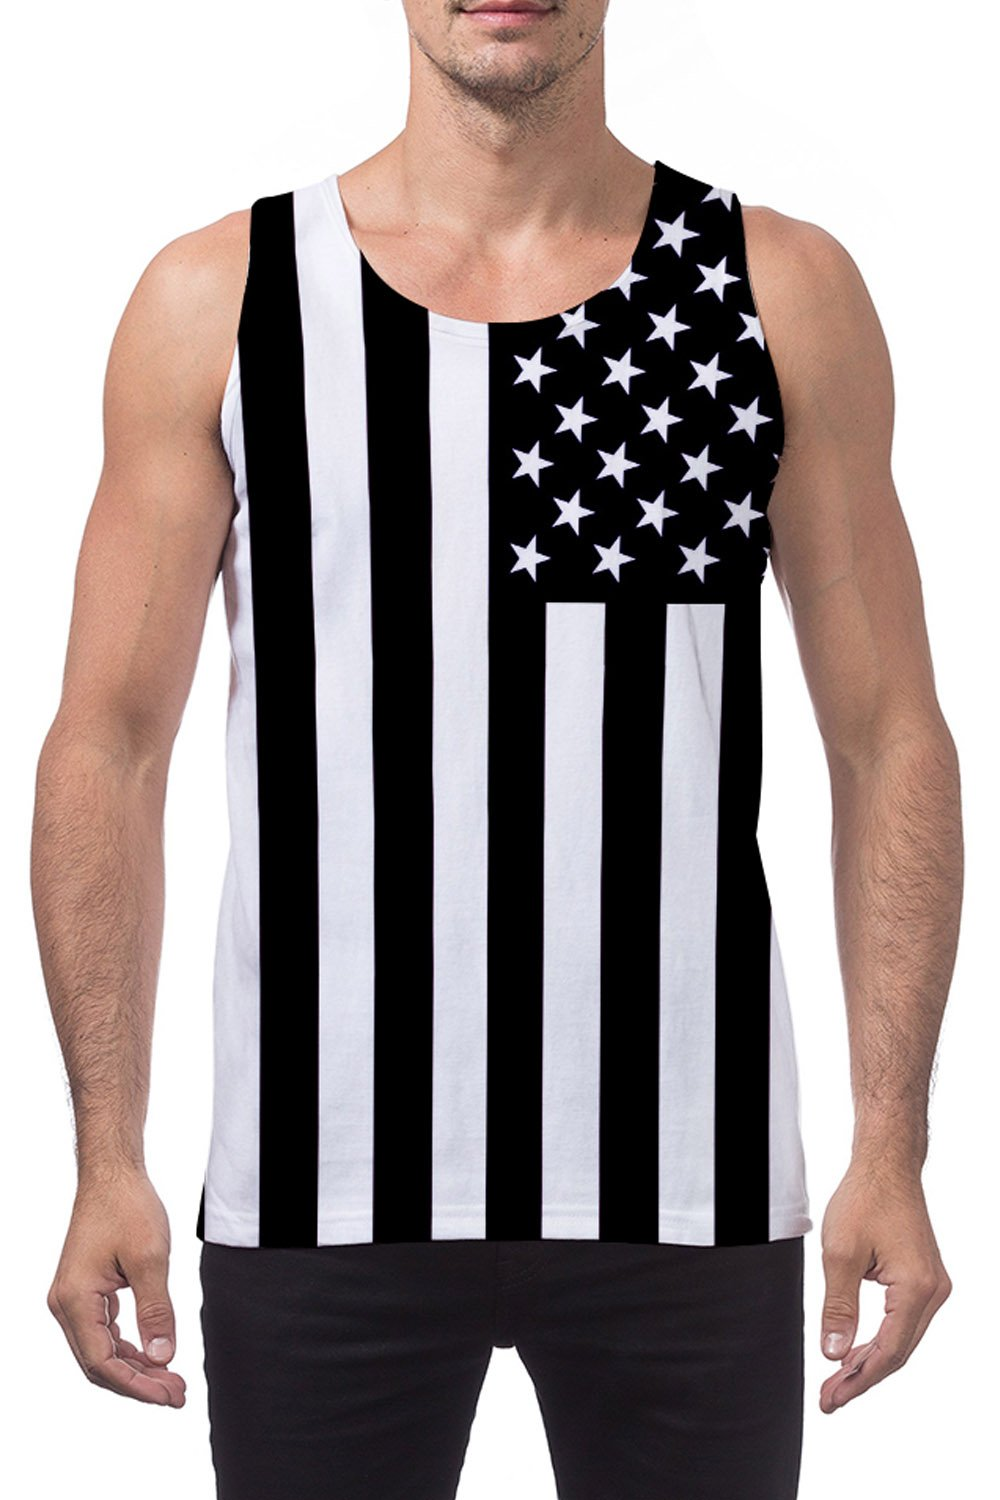 Leapparel Men and Boys 3D Pattern USA Flag Tank Top Black&White Vest Sleeveless Tees T-Shirts for Dad Work Sport S